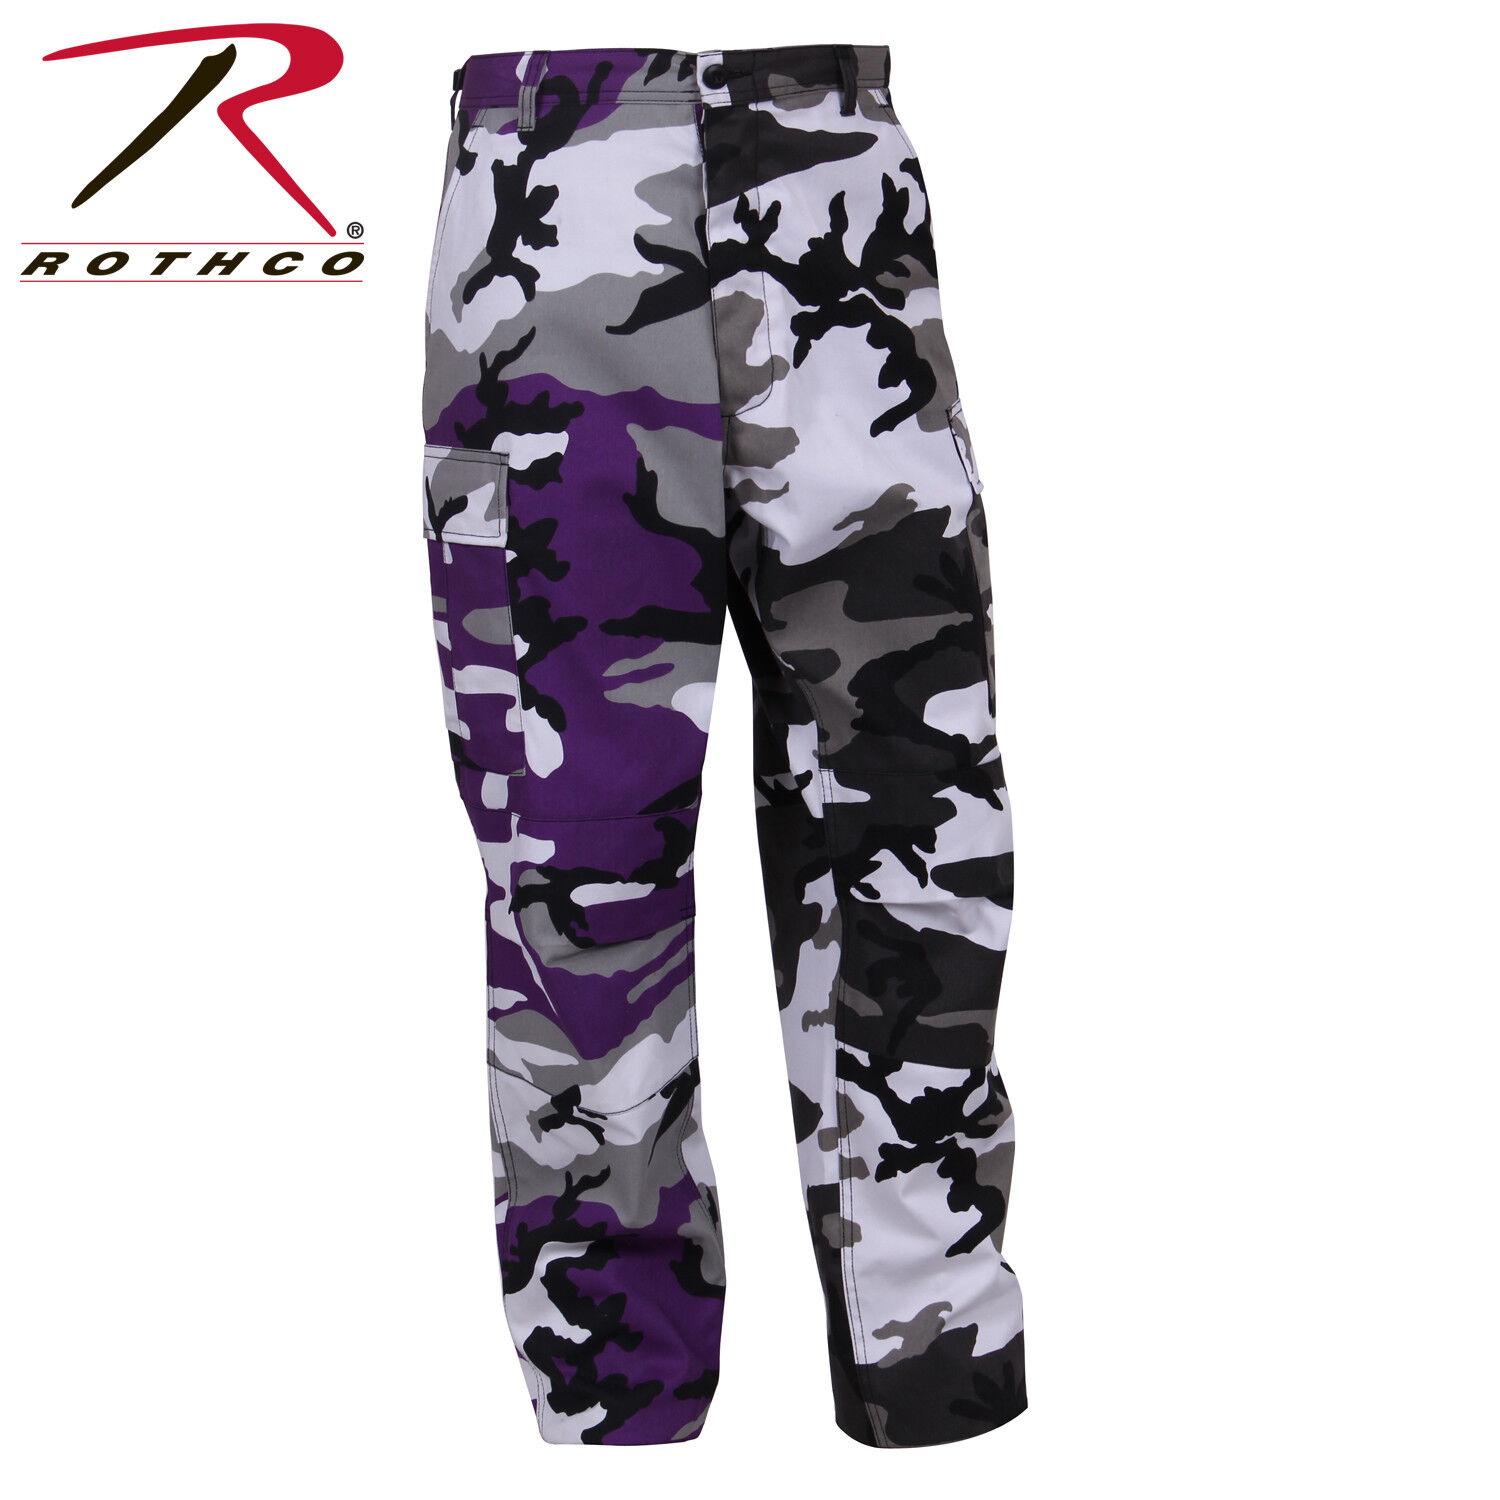 redhco Tactical BDU Pants Two-Tone Camo Ultra  purple City Camo  fast delivery